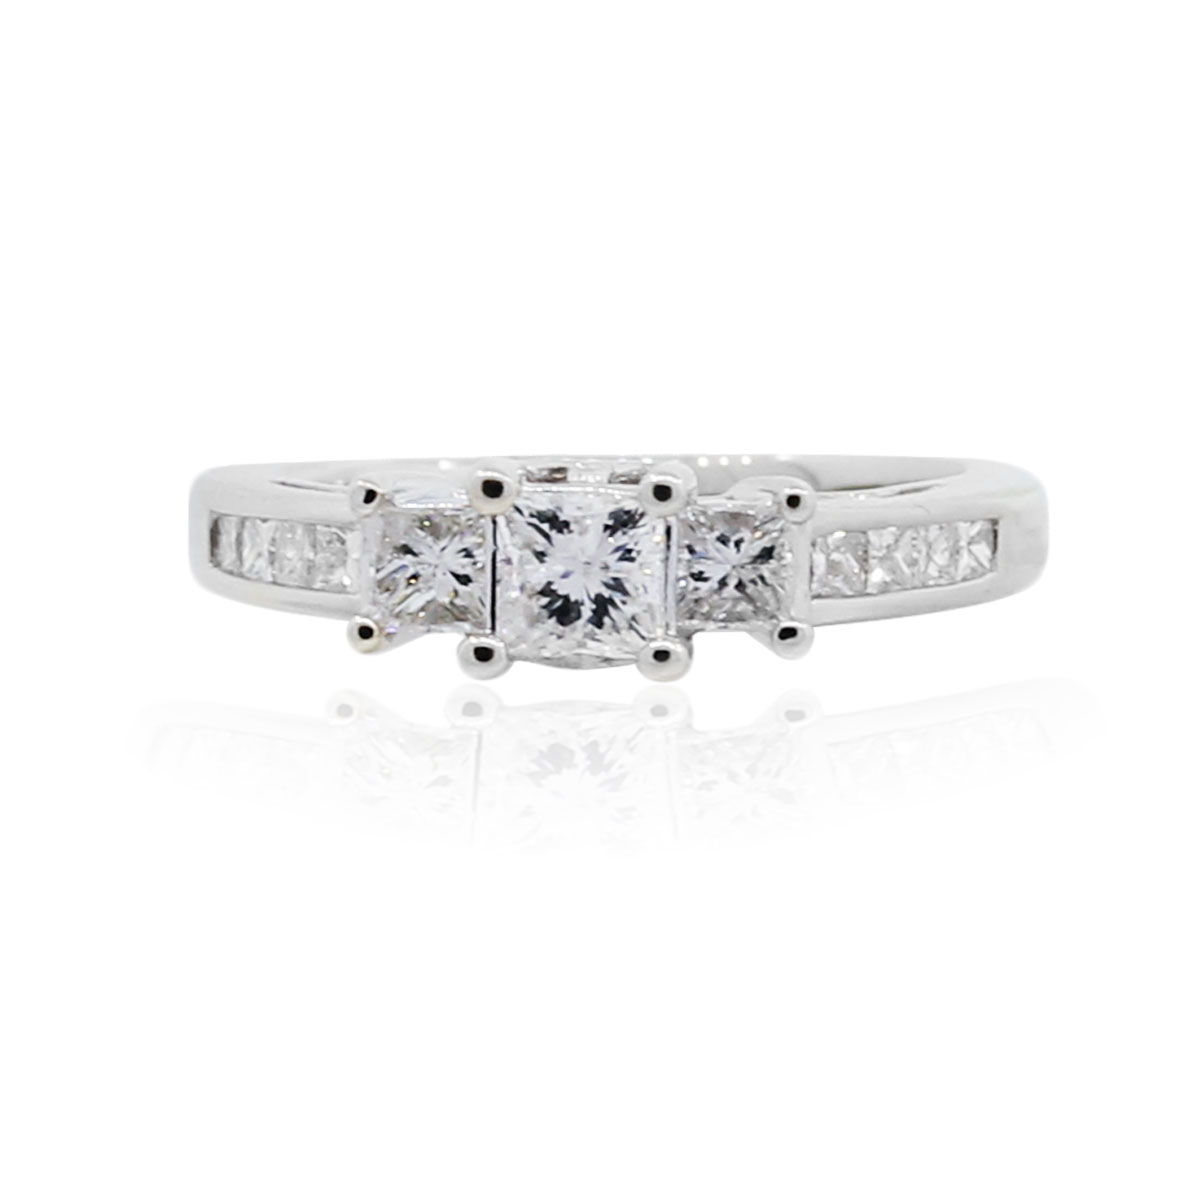 You are viewing this 14k 1ctw Princess Cut Diamond Engagement Ring!